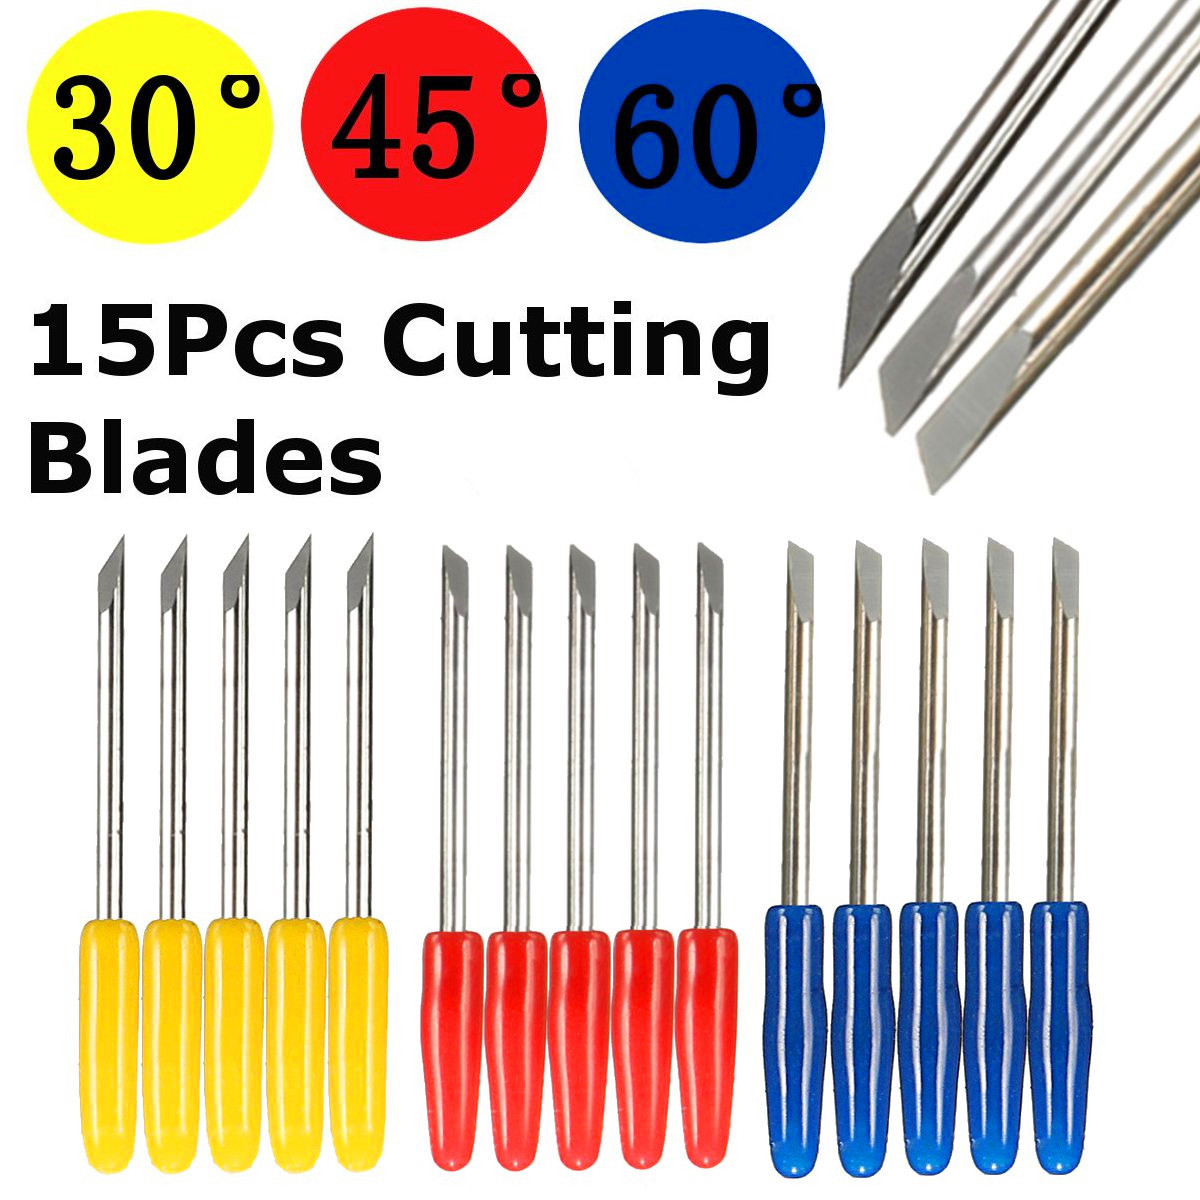 5pcs 30/ 45/ 60 Degree Vinyl Cutter Engraving Machine Blades Cutter For Graphtec CB09 Vinyl Cutter Plotter Handle